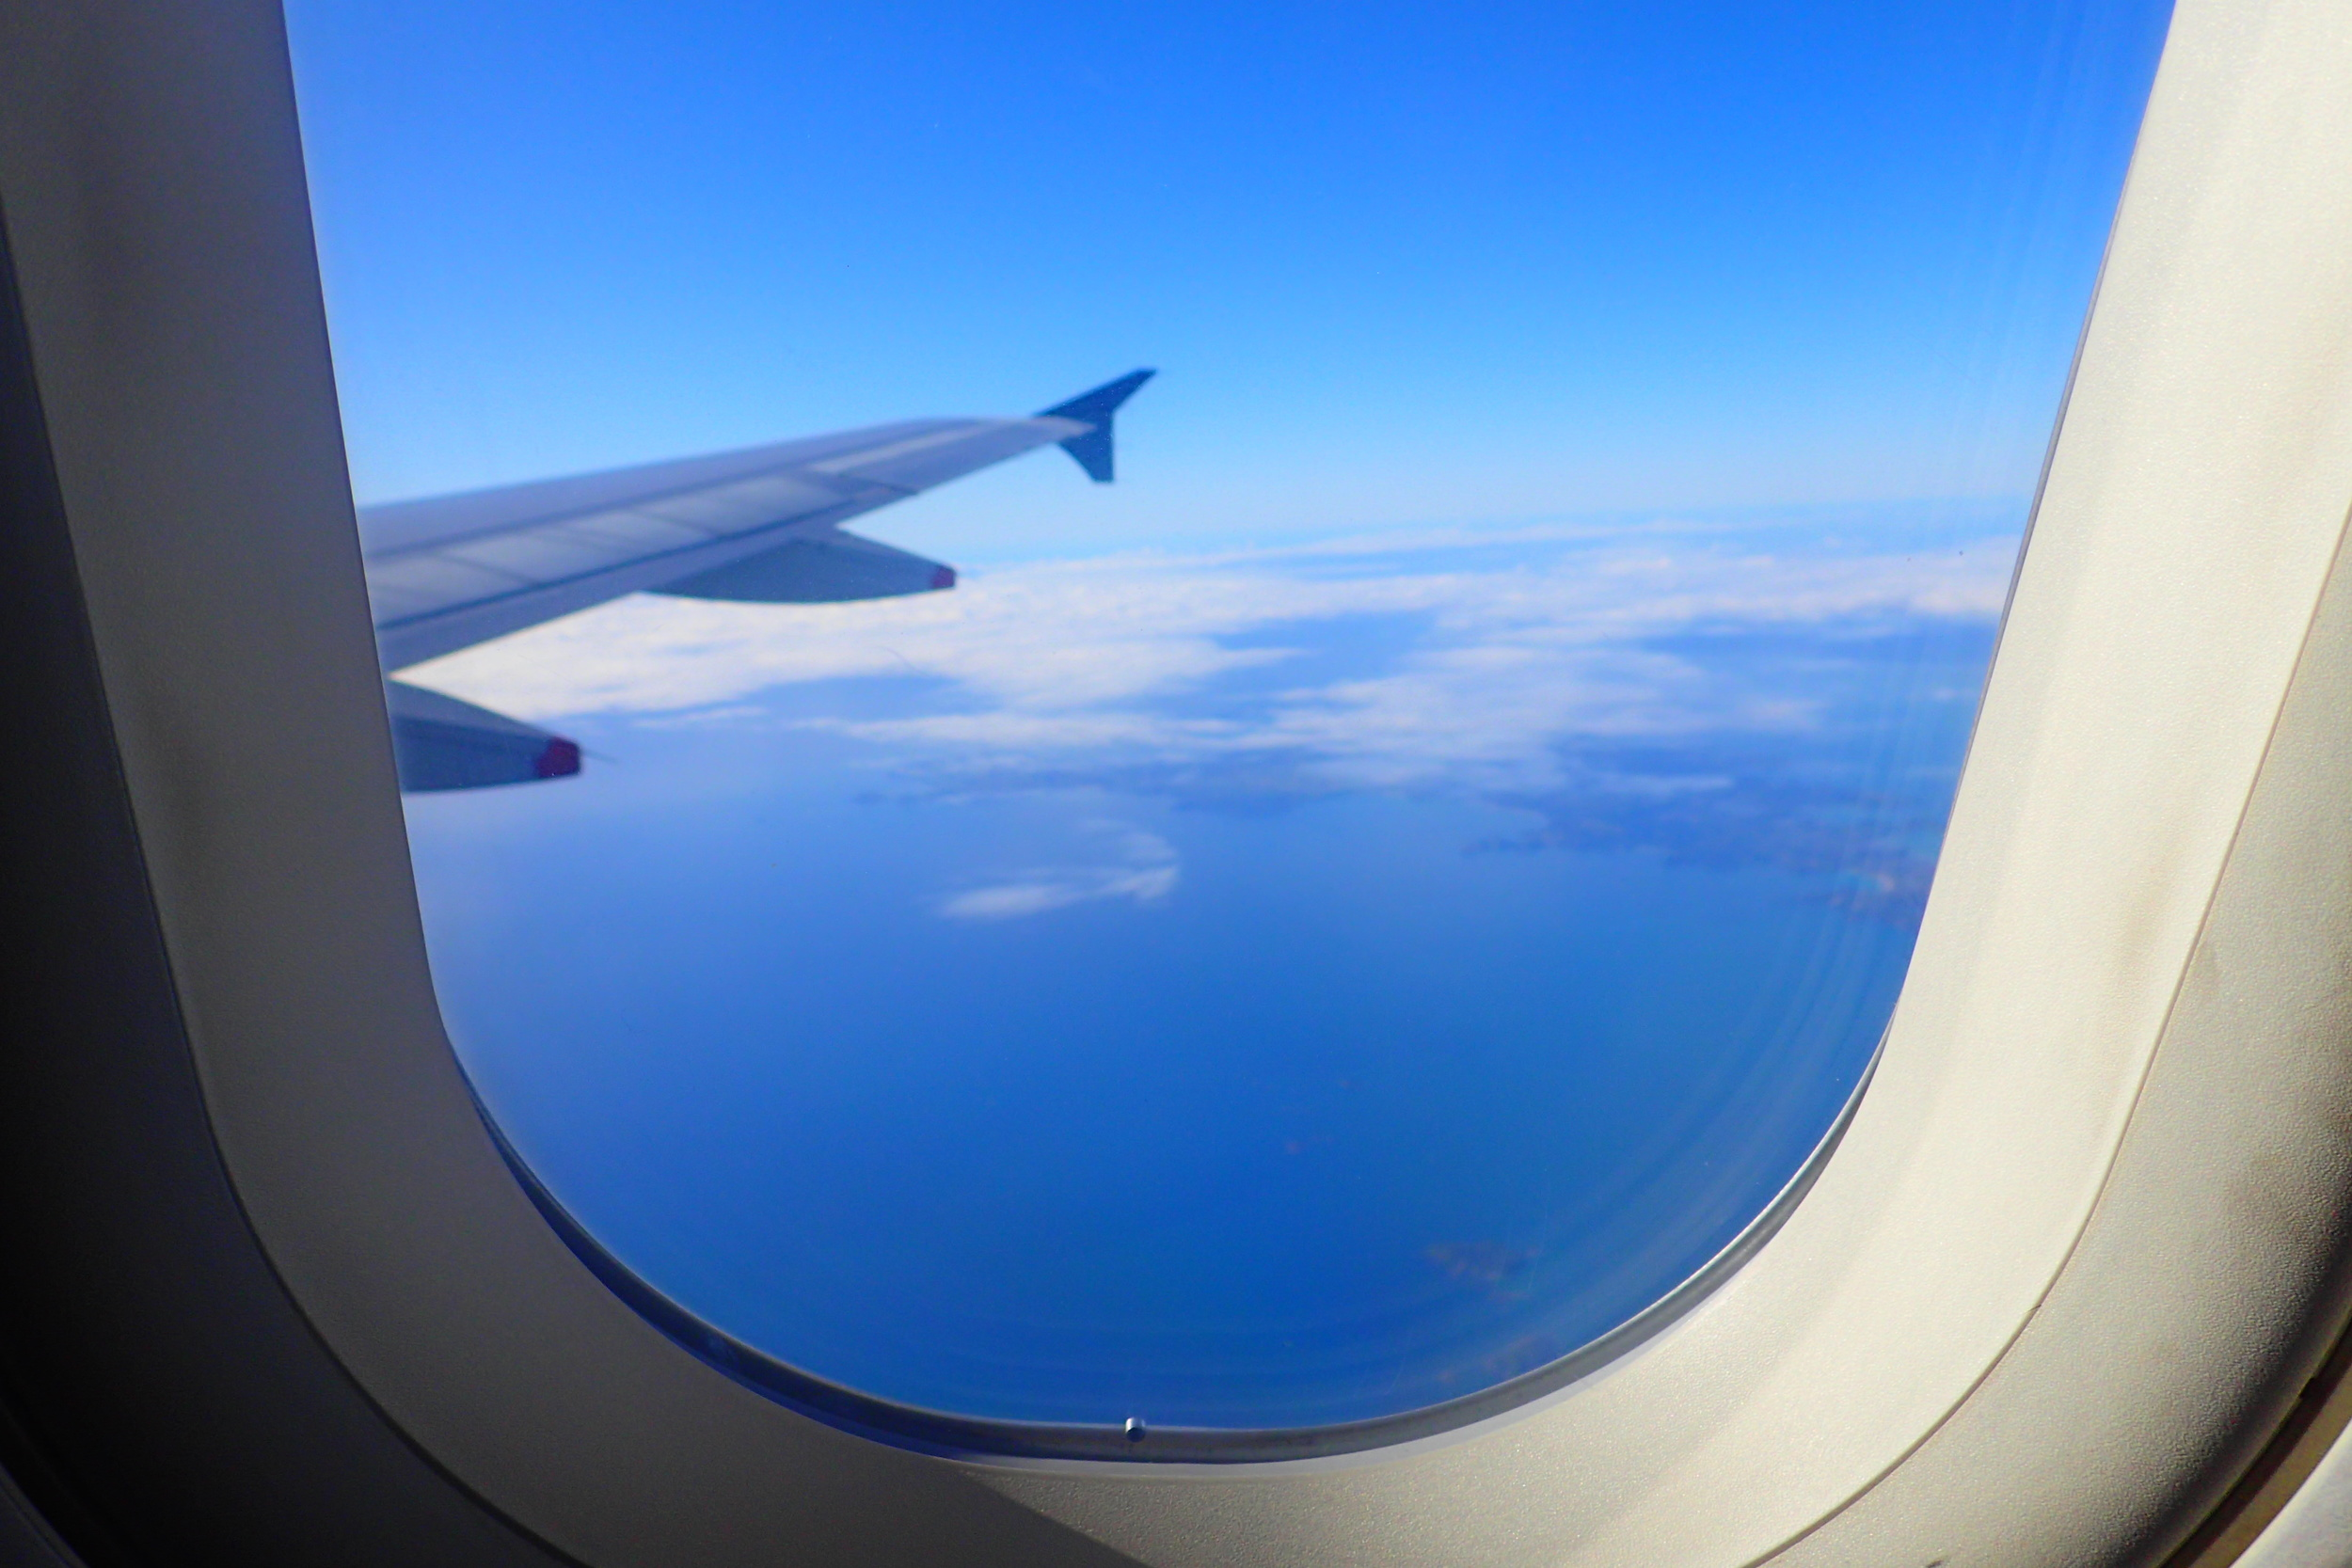 A view from the window on my flight over New Zealand